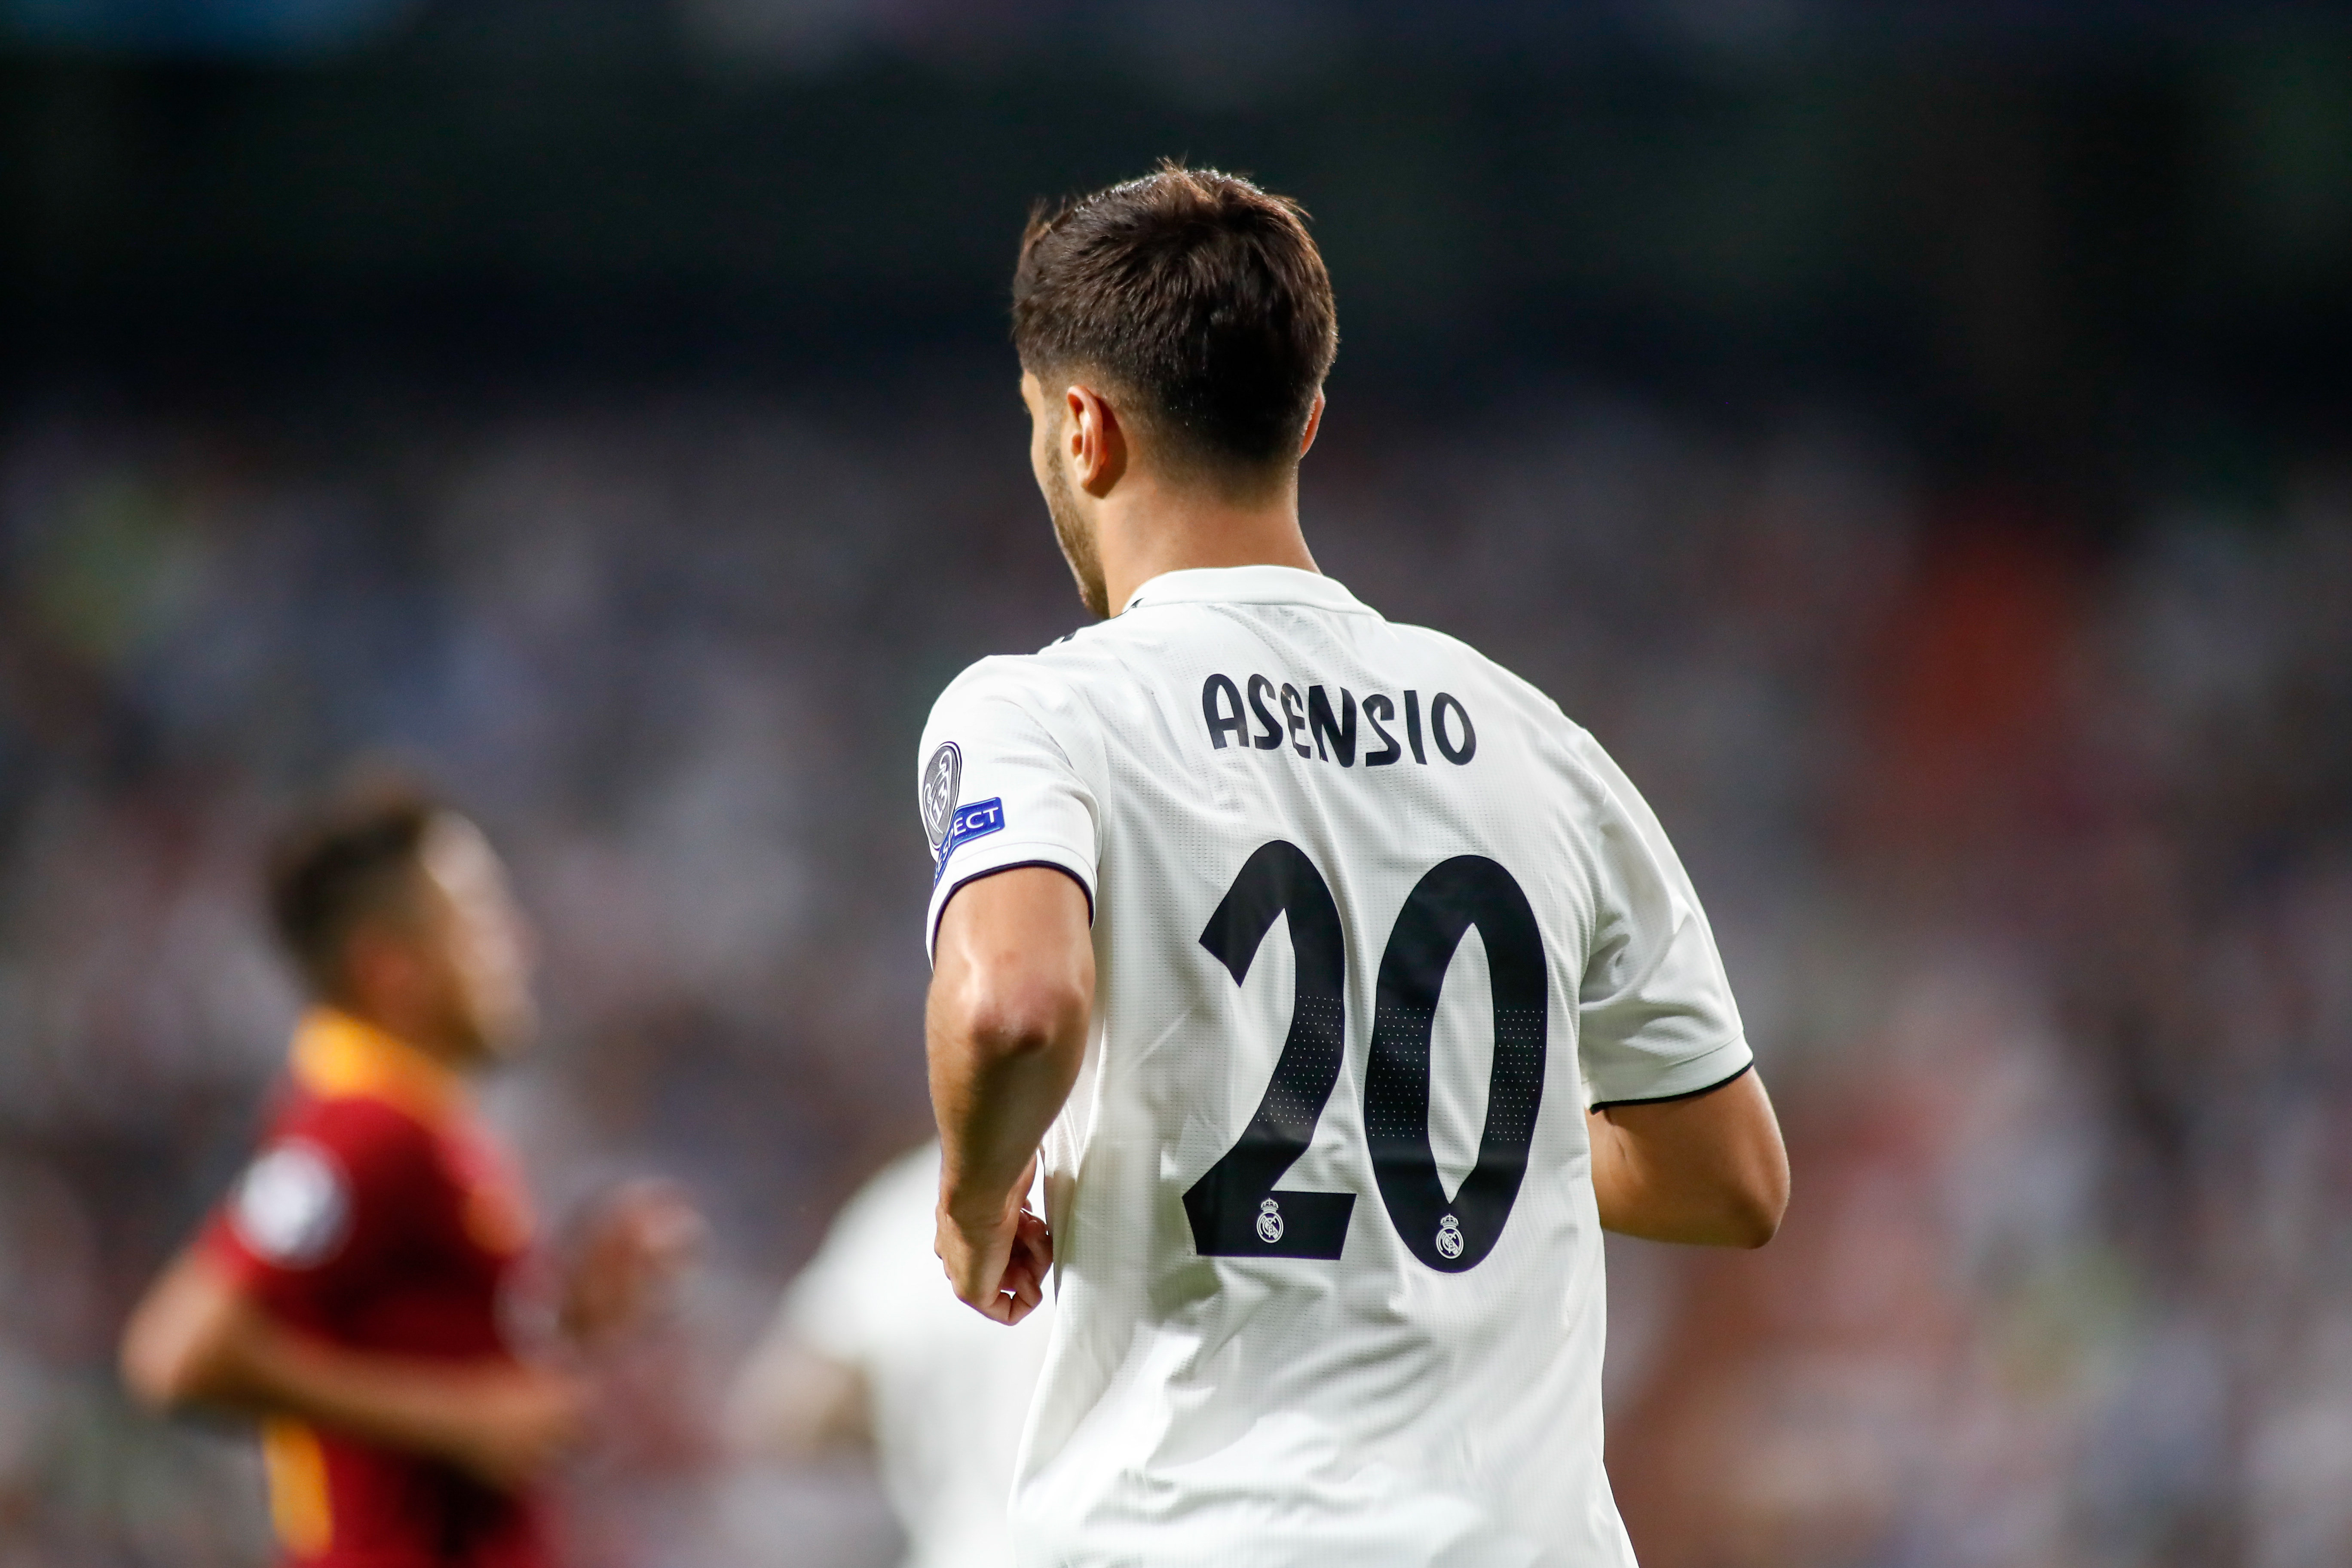 Real Madrid vs. AS Roma - Football Match Report - September 19, 2018